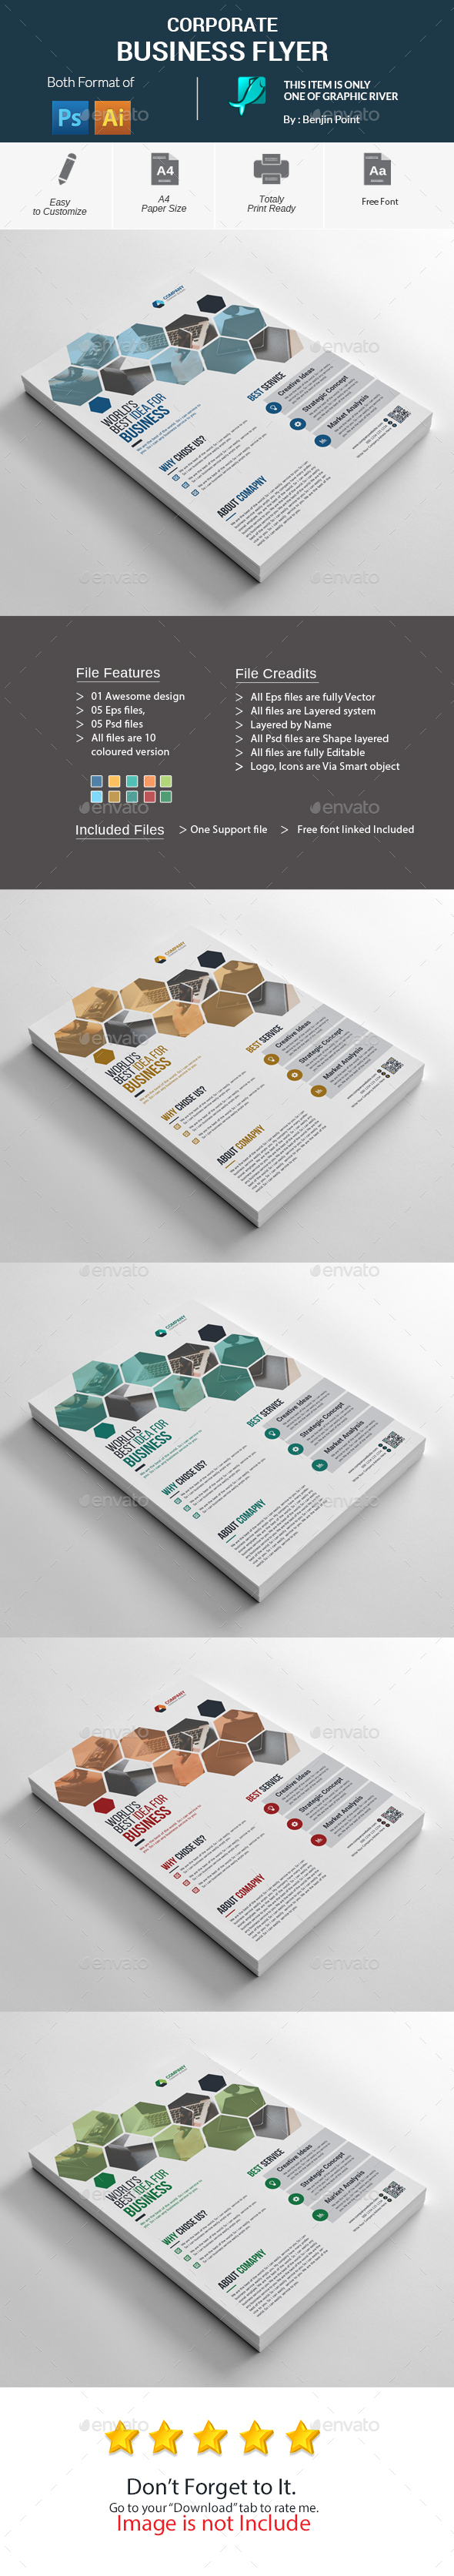 GraphicRiver Corporate Business Flyer 20990150